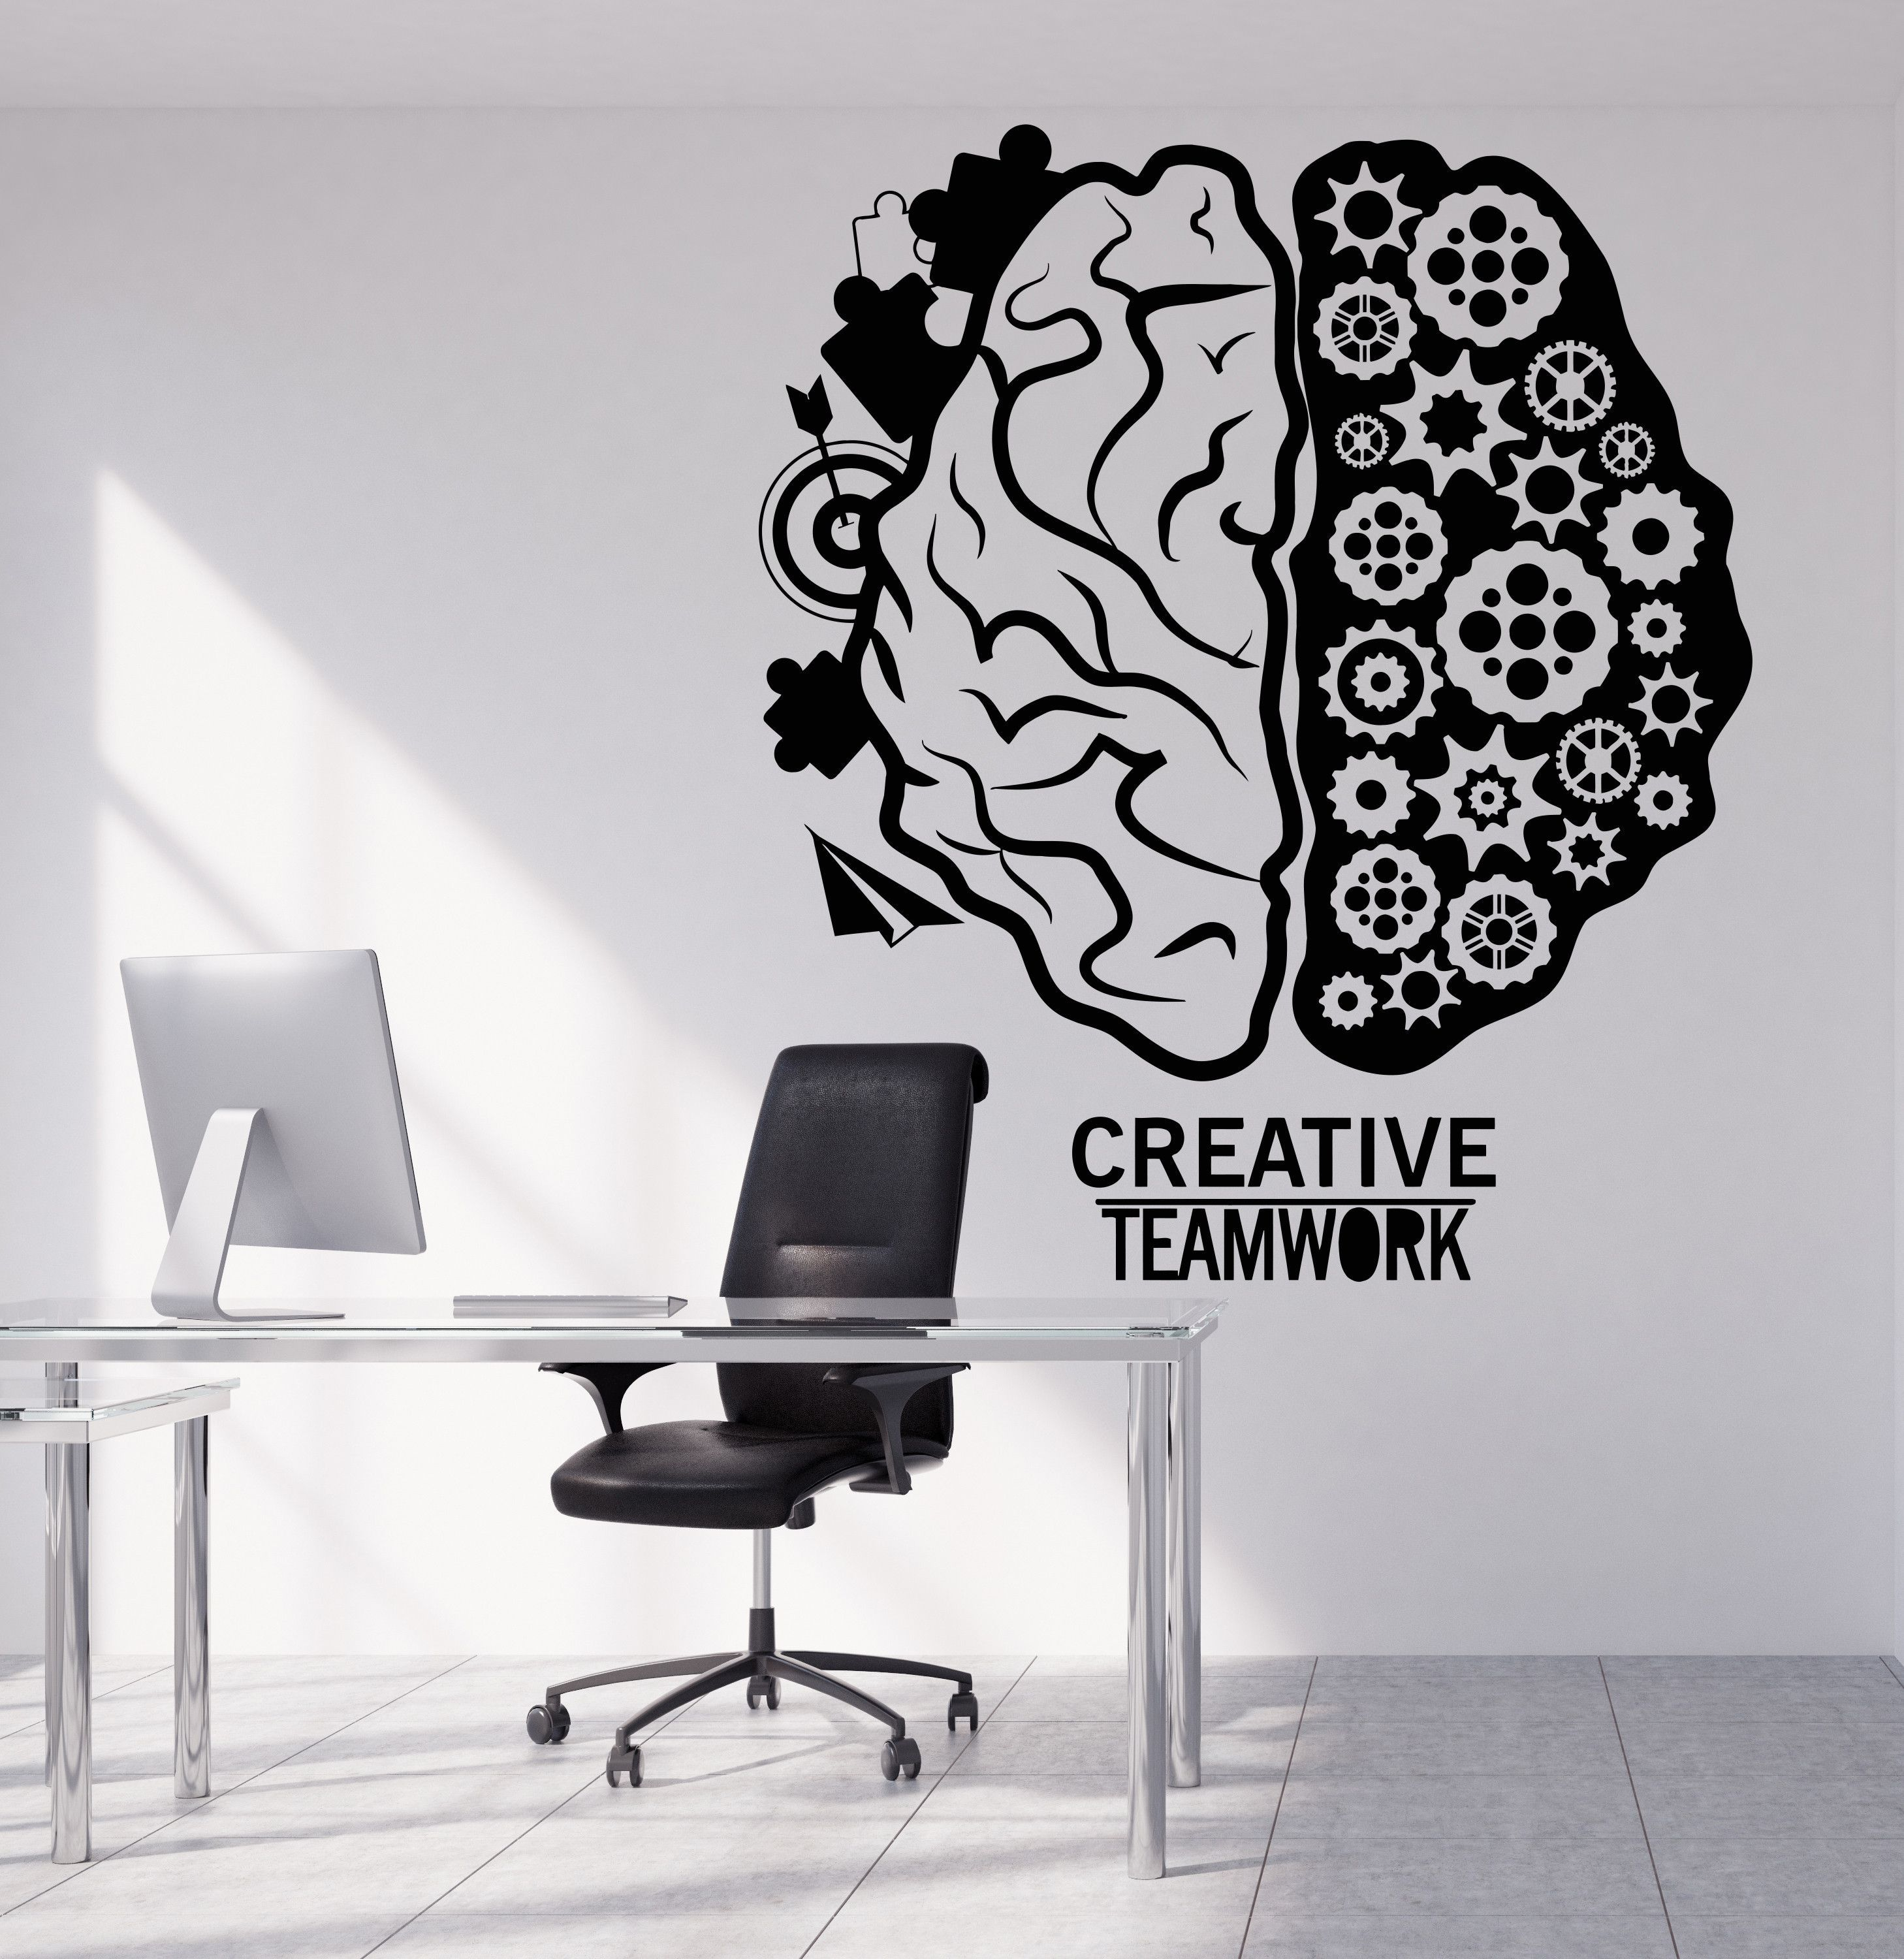 Vinyl Wall Decal Brain Teamwork Gear Creative Office Decor Stickers